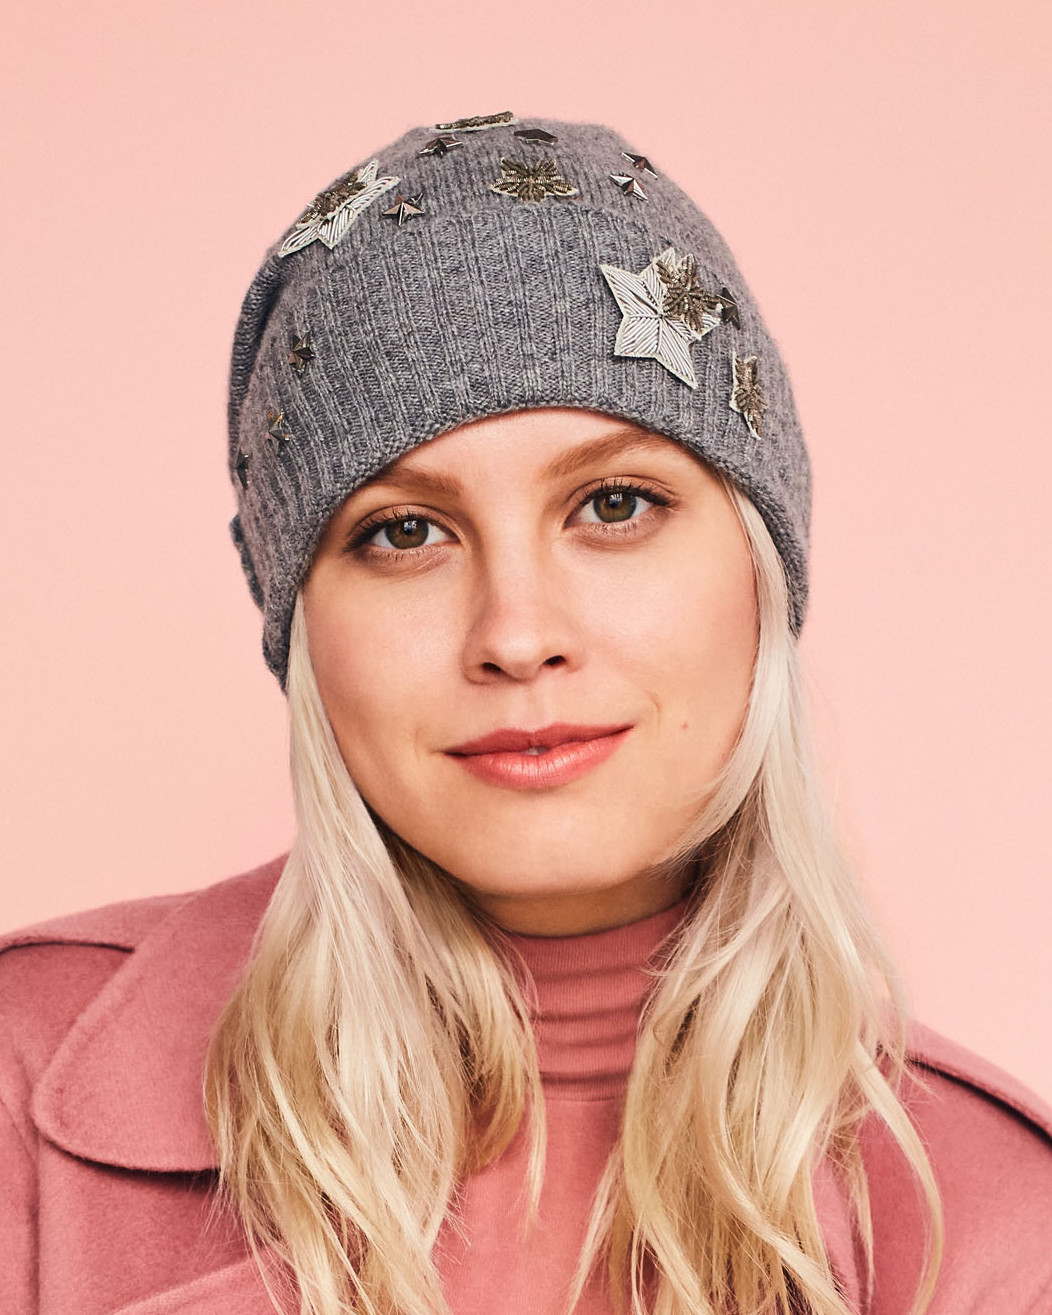 In the bitter cold of winter, you'll be reaching for a warm hat every day. That's why we brightened this basic beanie with vintage bullion appliqués and iron-on metal studs. Create this look by attaching vintage bullion appliqués with fabric glue, and iron-on metal studs to a vintage cashmere hat.Shop Now: Barney's New York Slouchy Cashmere Hat, $95, barneys.com. Trims by the Yard Christmas Small Branch Snowflake Iron-On Appliqués, $2 for 3, trimsbytheyard.com.